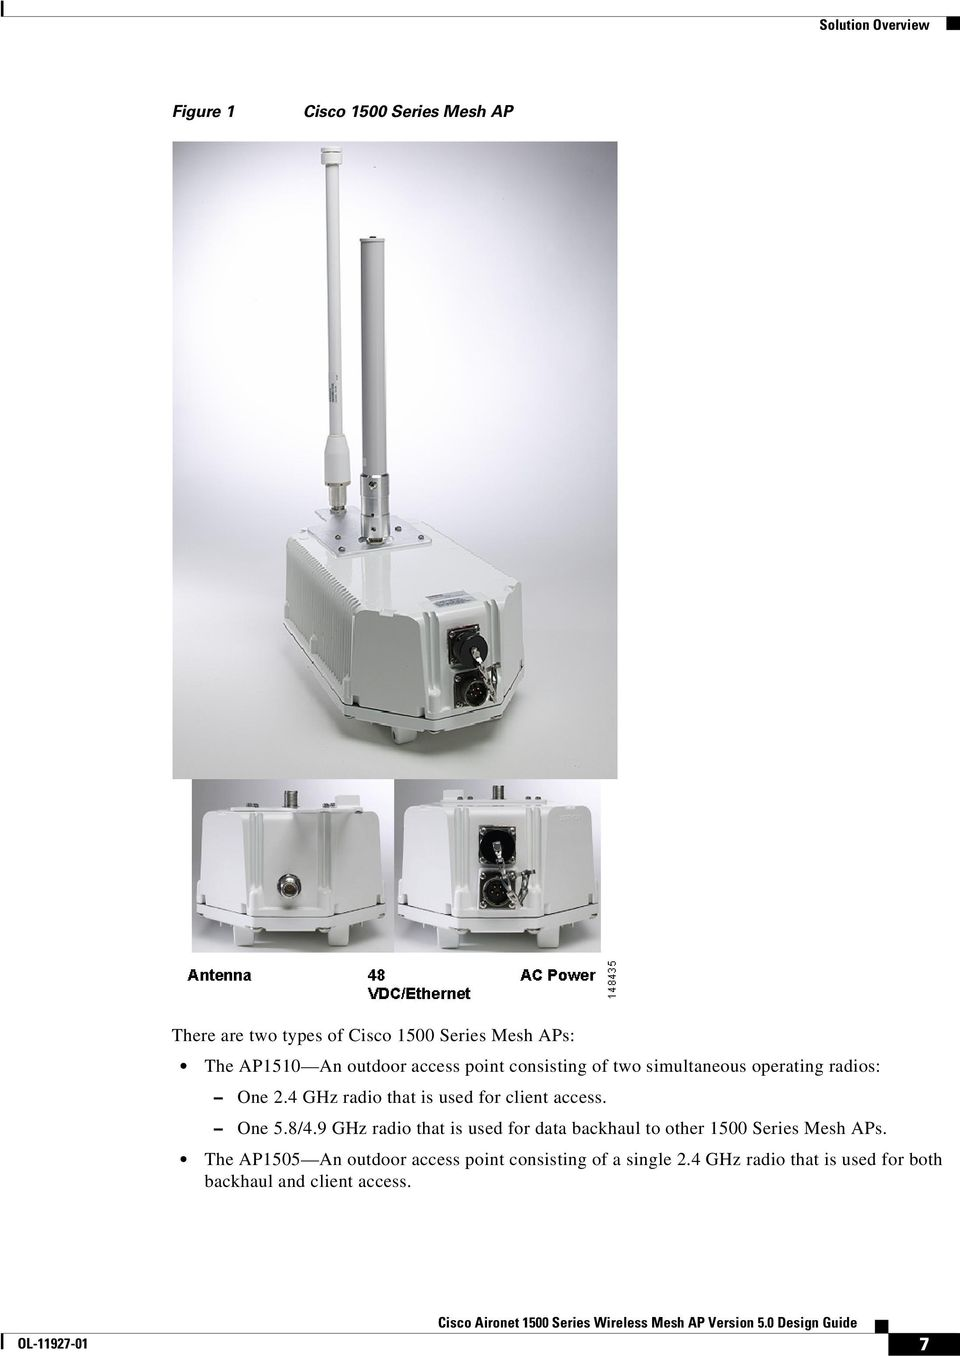 4 GHz radio that is used for client access. One 5.8/4.